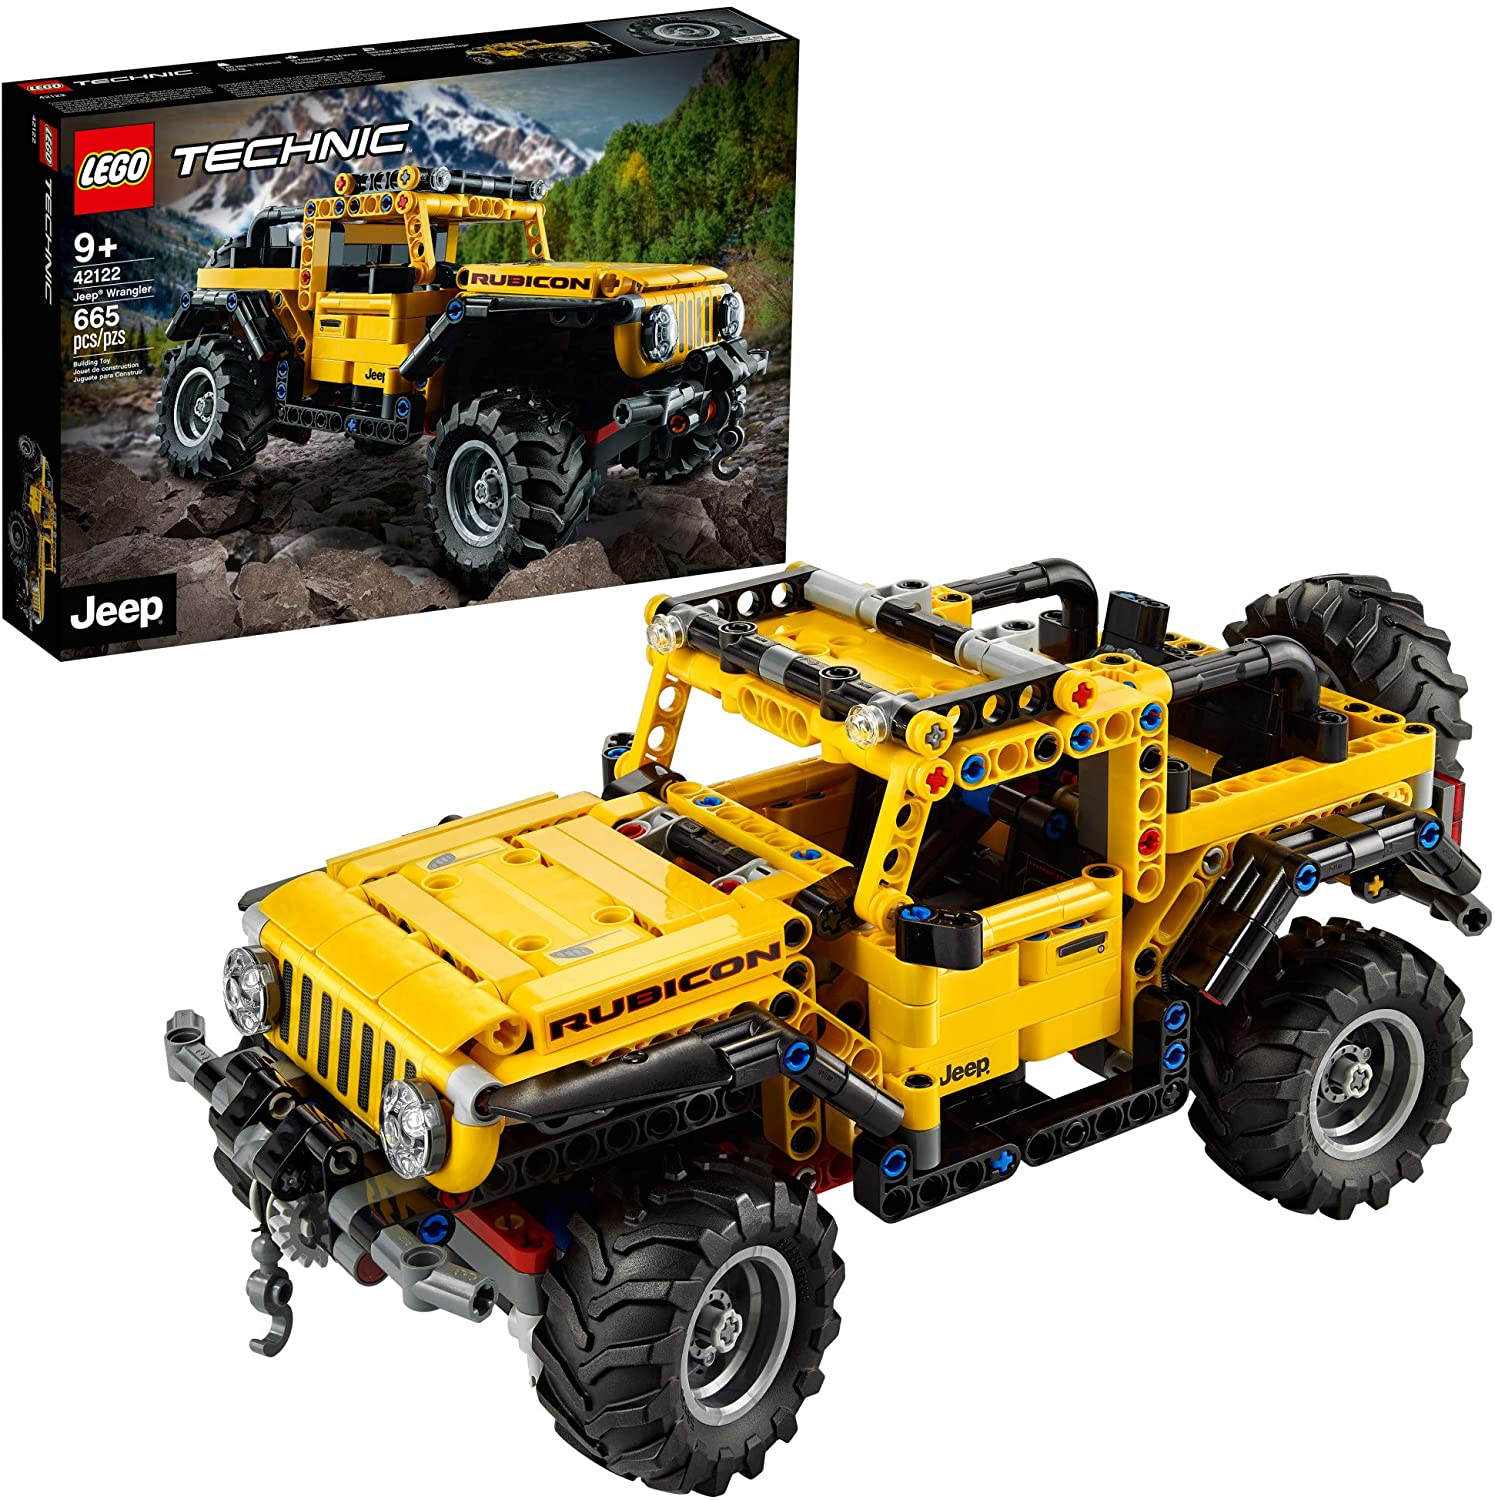 LEGO Technic Jeep Wrangler 42122; an Engaging Model Building Kit for Kids Who Love High-Performance Toy Vehicles, New 2021 (665 Pieces): Toys & Games